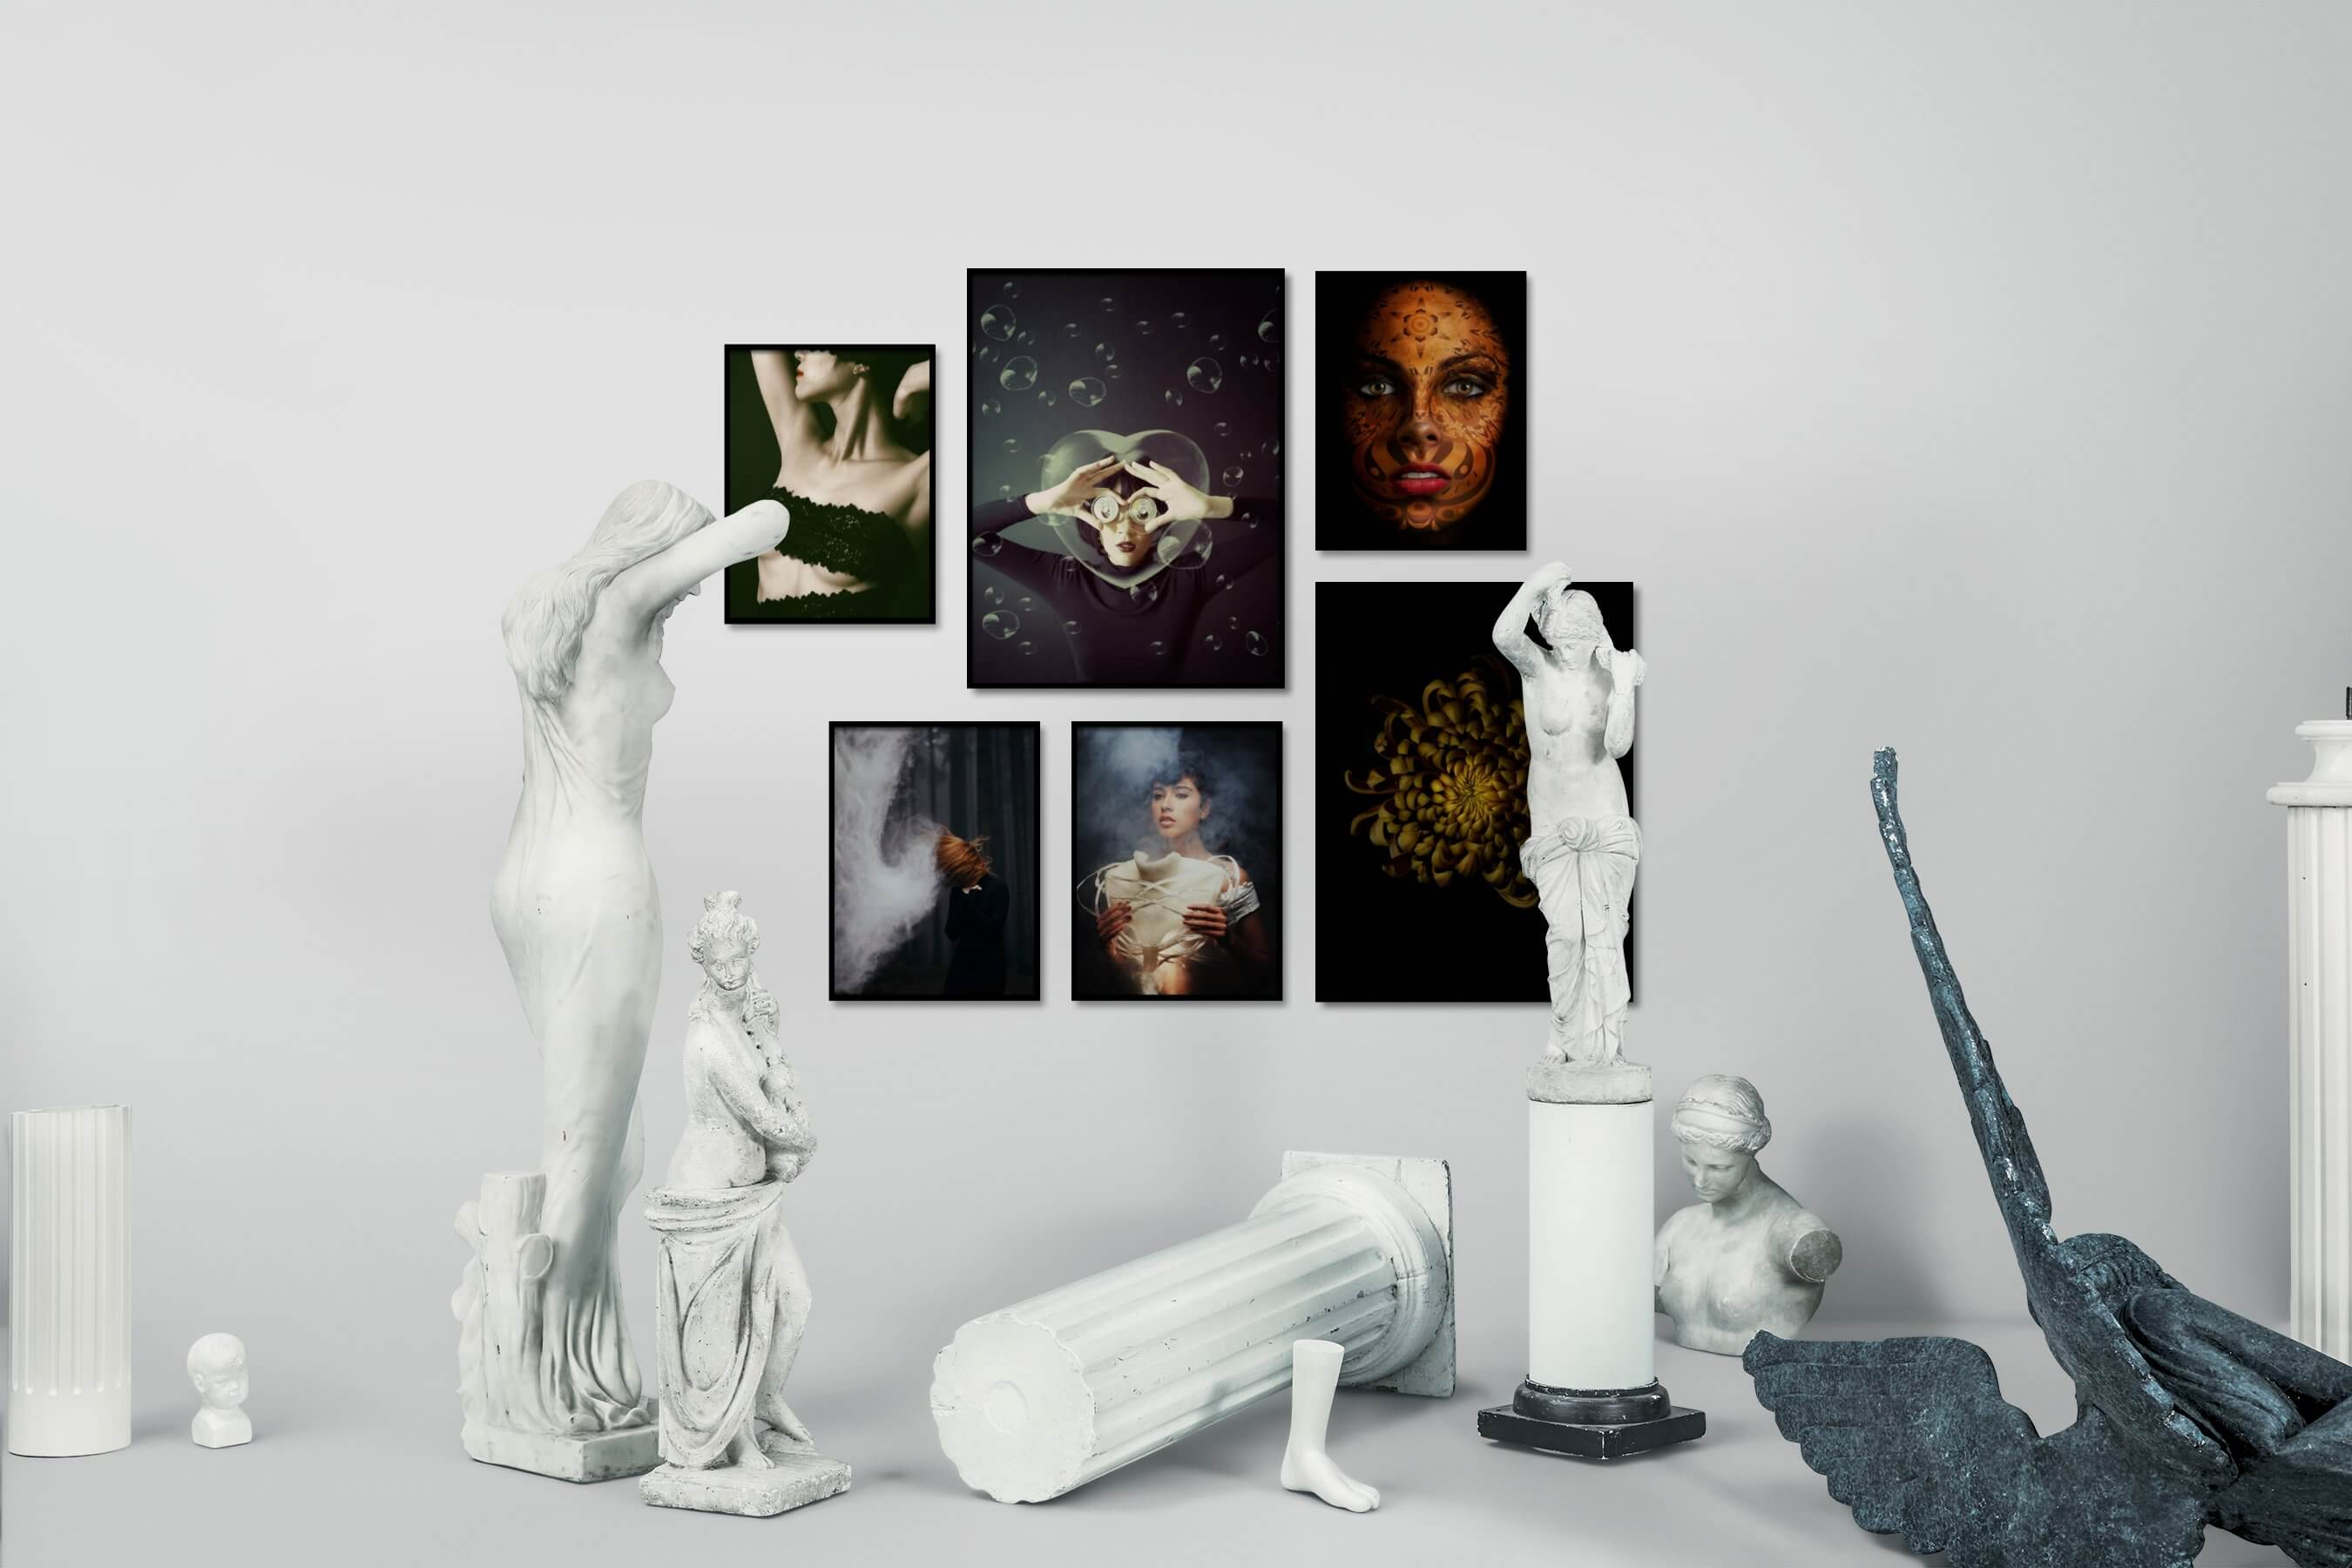 Gallery wall idea with six framed pictures arranged on a wall depicting Fashion & Beauty, Artsy, For the Moderate, Dark Tones, For the Minimalist, and Flowers & Plants